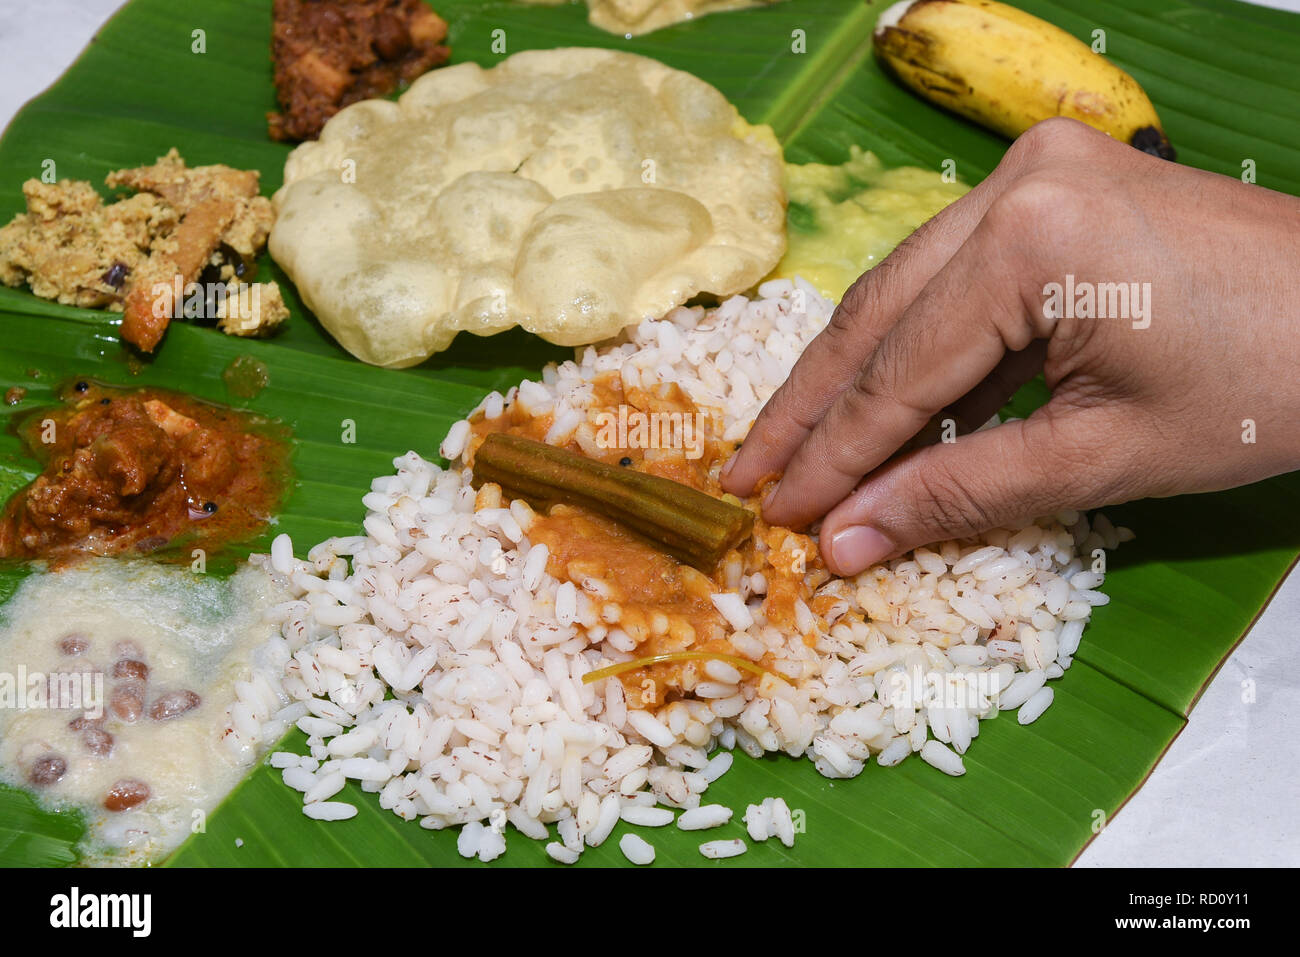 Traditional Onam Sadhya boiled rice with curries, payasam eating on banana leaf with hand. Grand feast on Onam, Vishu harvest festival of Kerala India - Stock Image